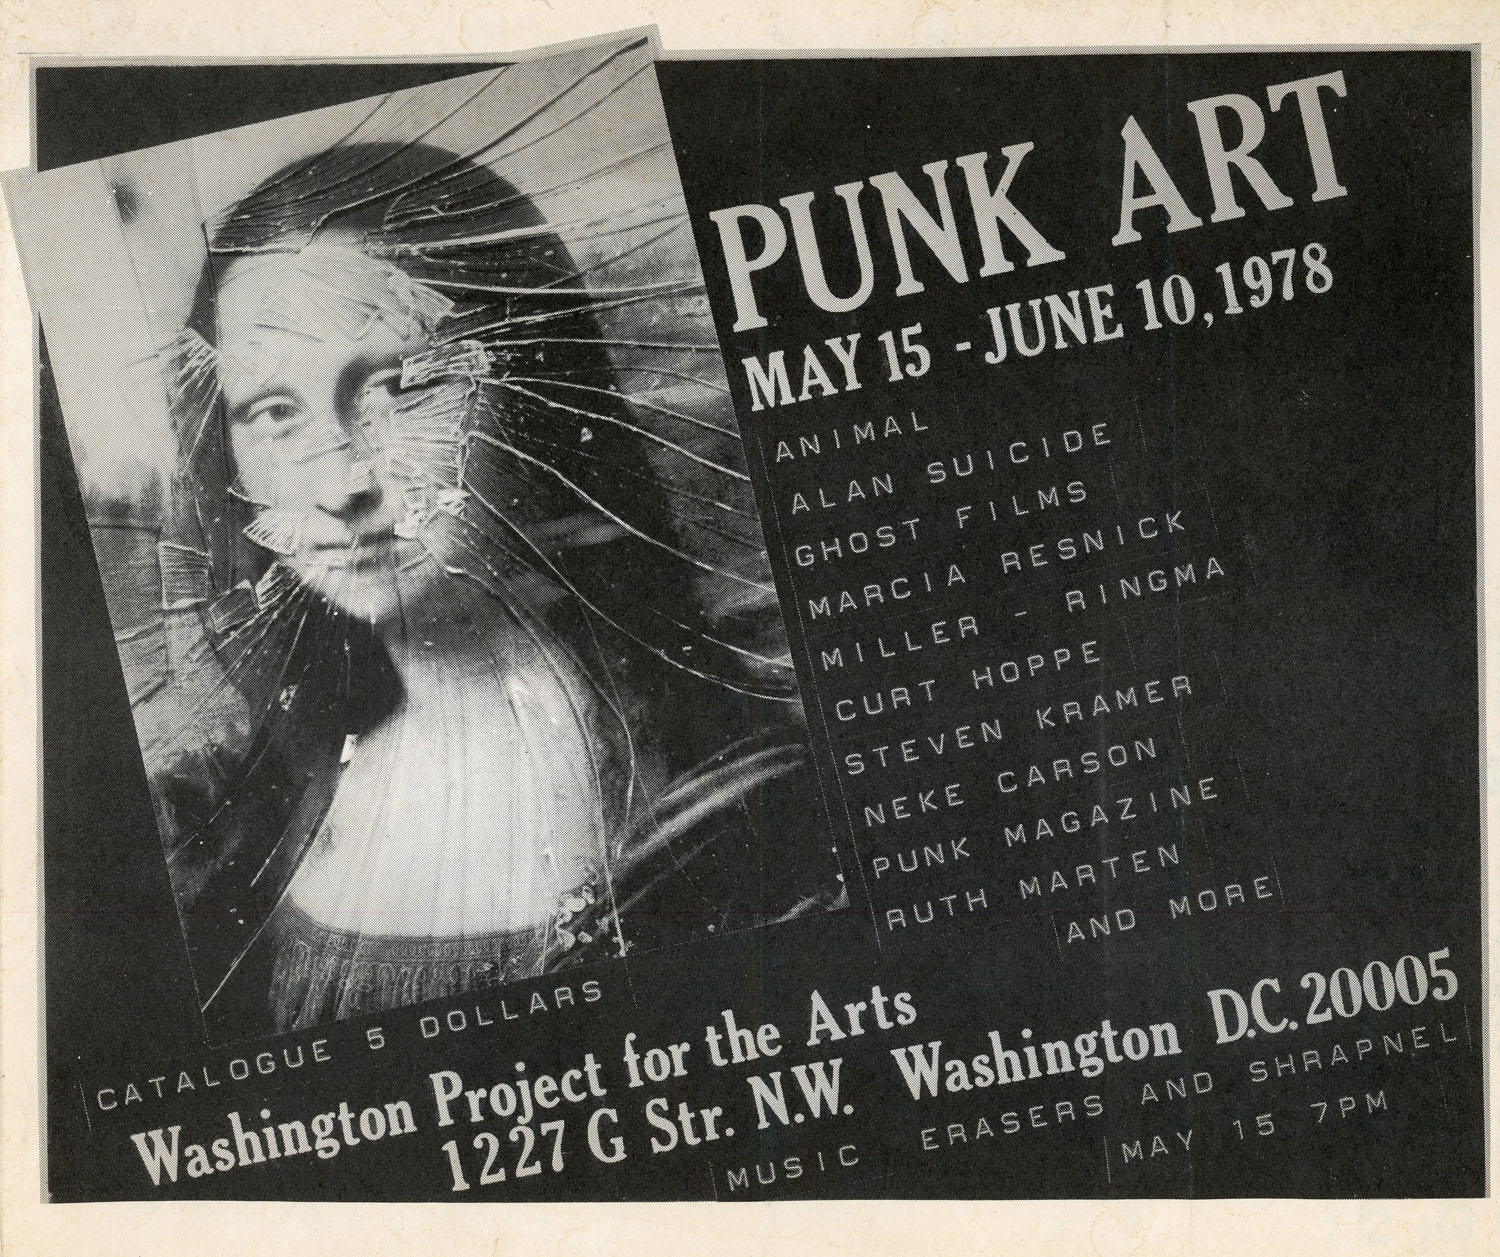 Poster for the Punk Art Show, Washington Project for the Arts